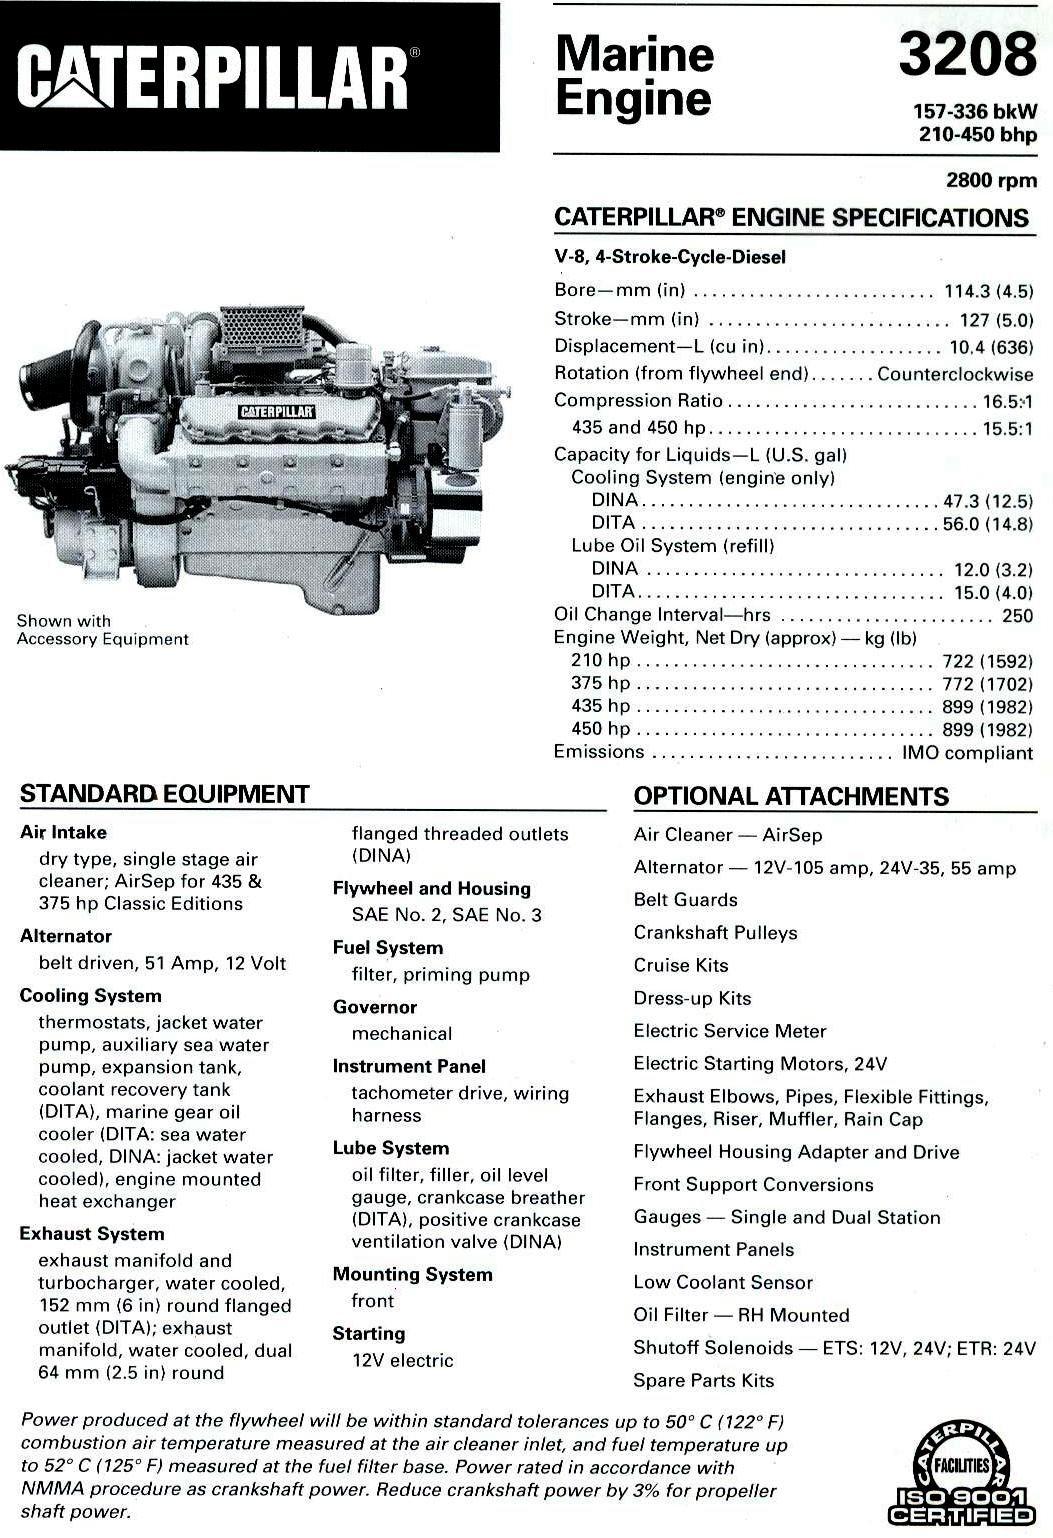 Cat 3126 Ipr Wiring Diagram Not Lossing Marine Engine Schematic Starter Caterpillar 3208 Get Free Image Diagrams